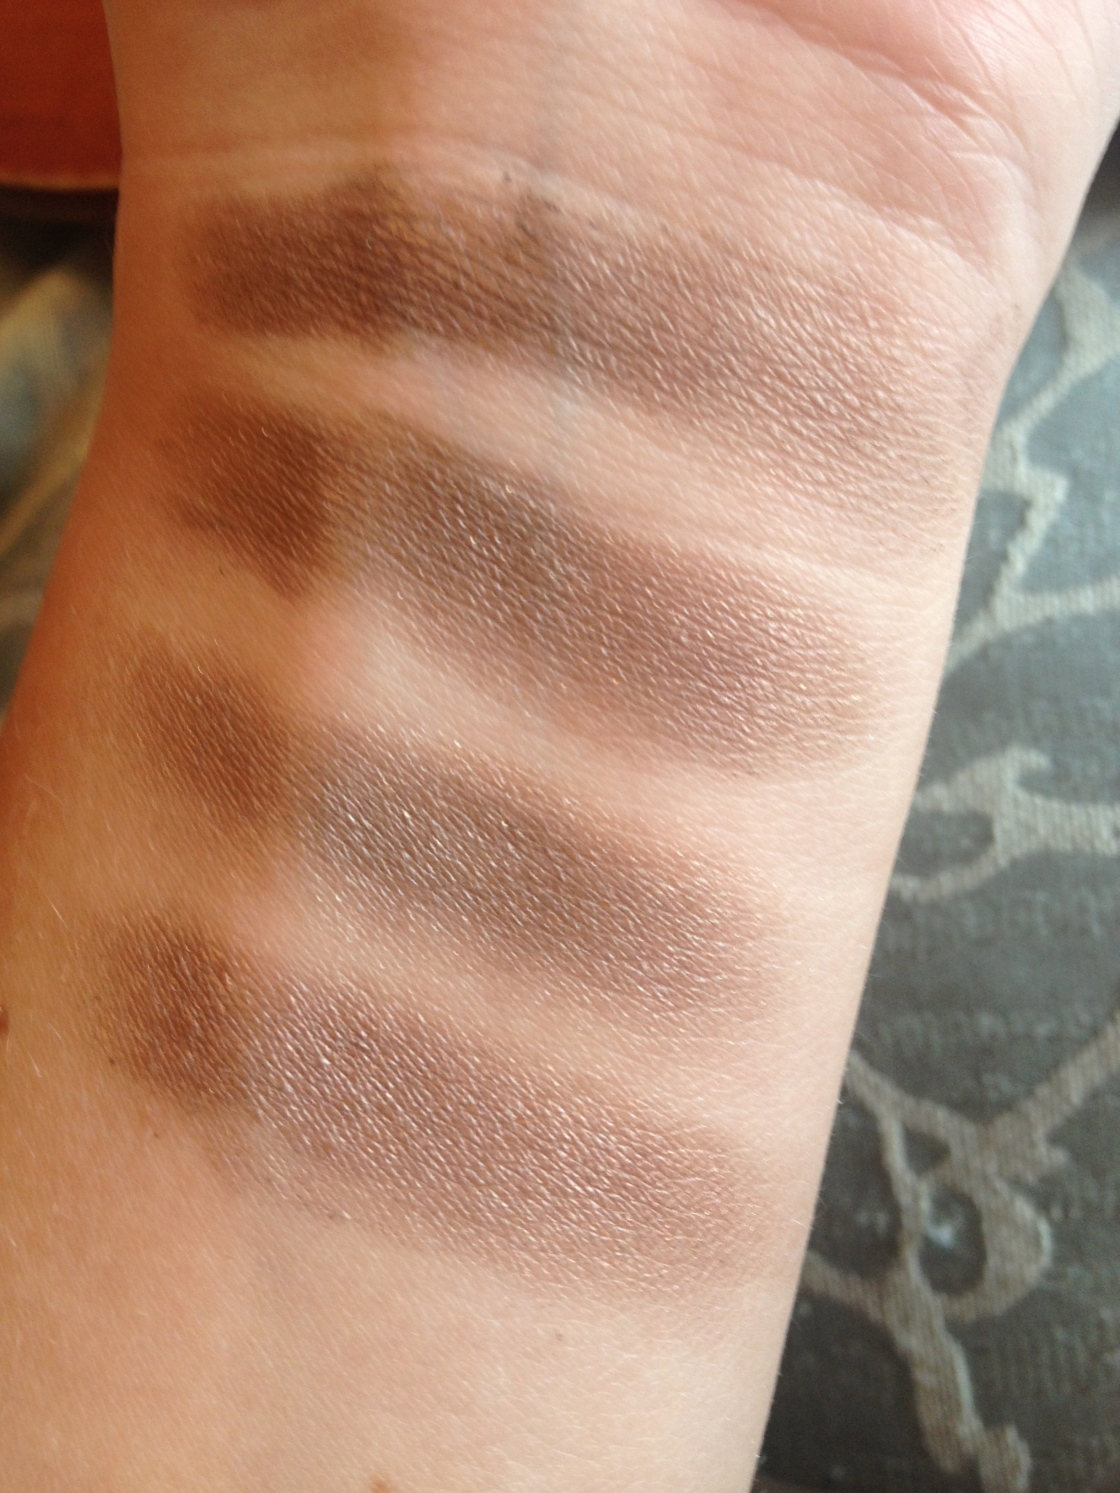 Top to Bottom: Physician's Formula Nude second to farthest left, Urban Decay Hustle, Physician's Formula Nudefourth from left, MAC Satin taupe - taken without flash